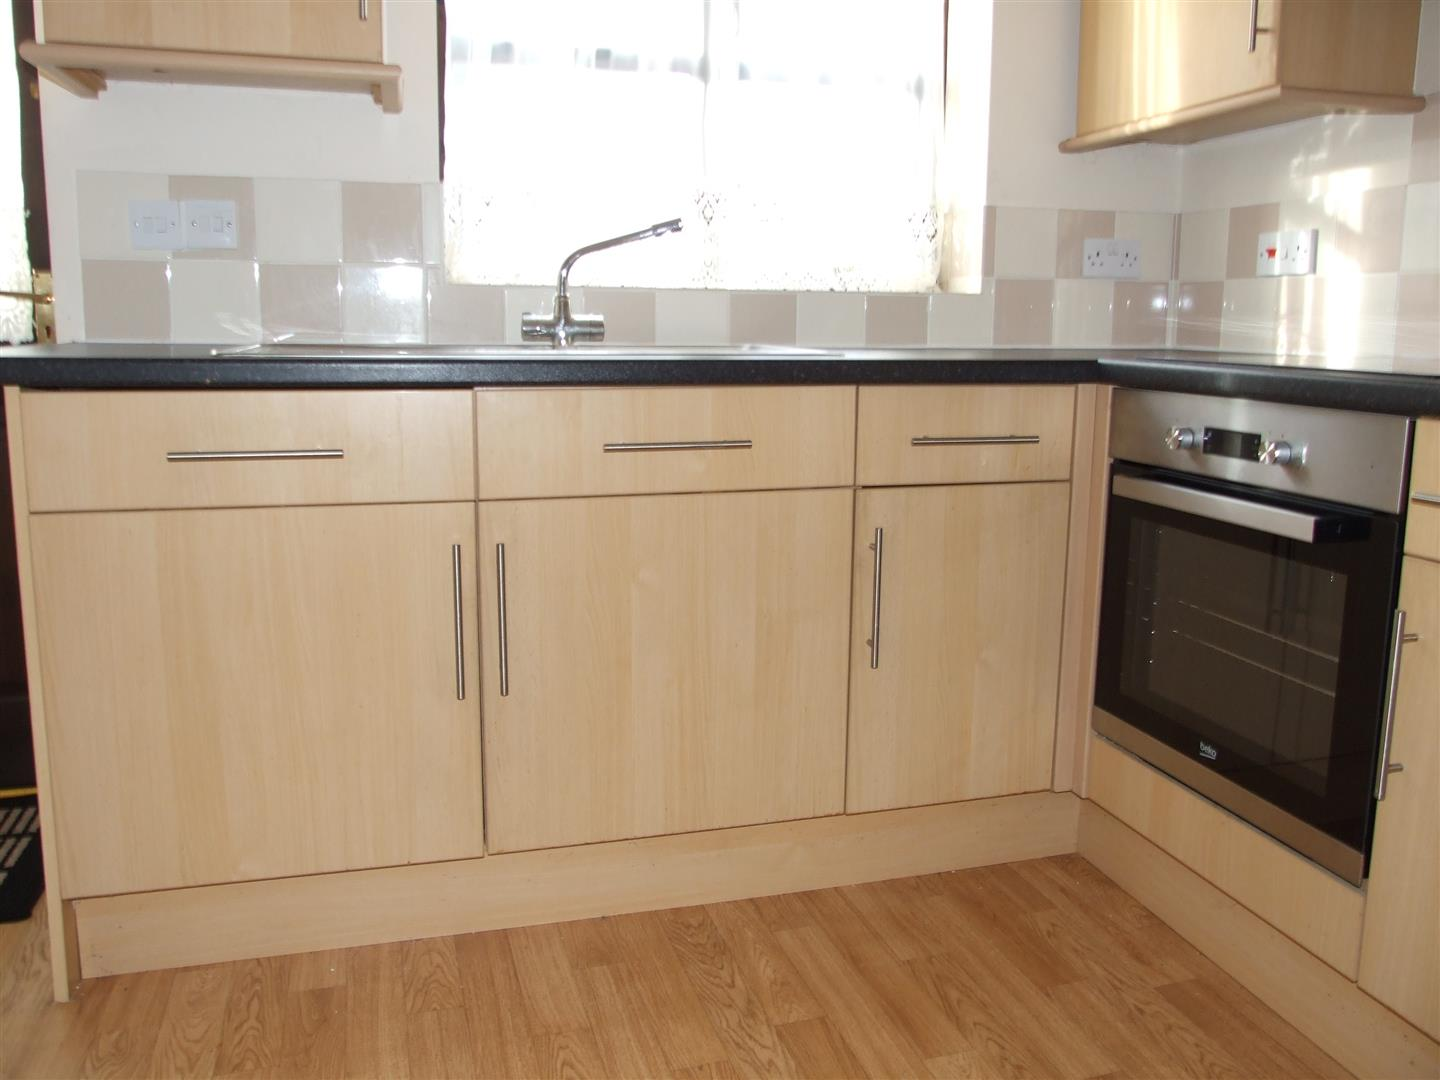 3 bed house to rent in Sutton Bridge Spalding, PE12 9UF  - Property Image 5